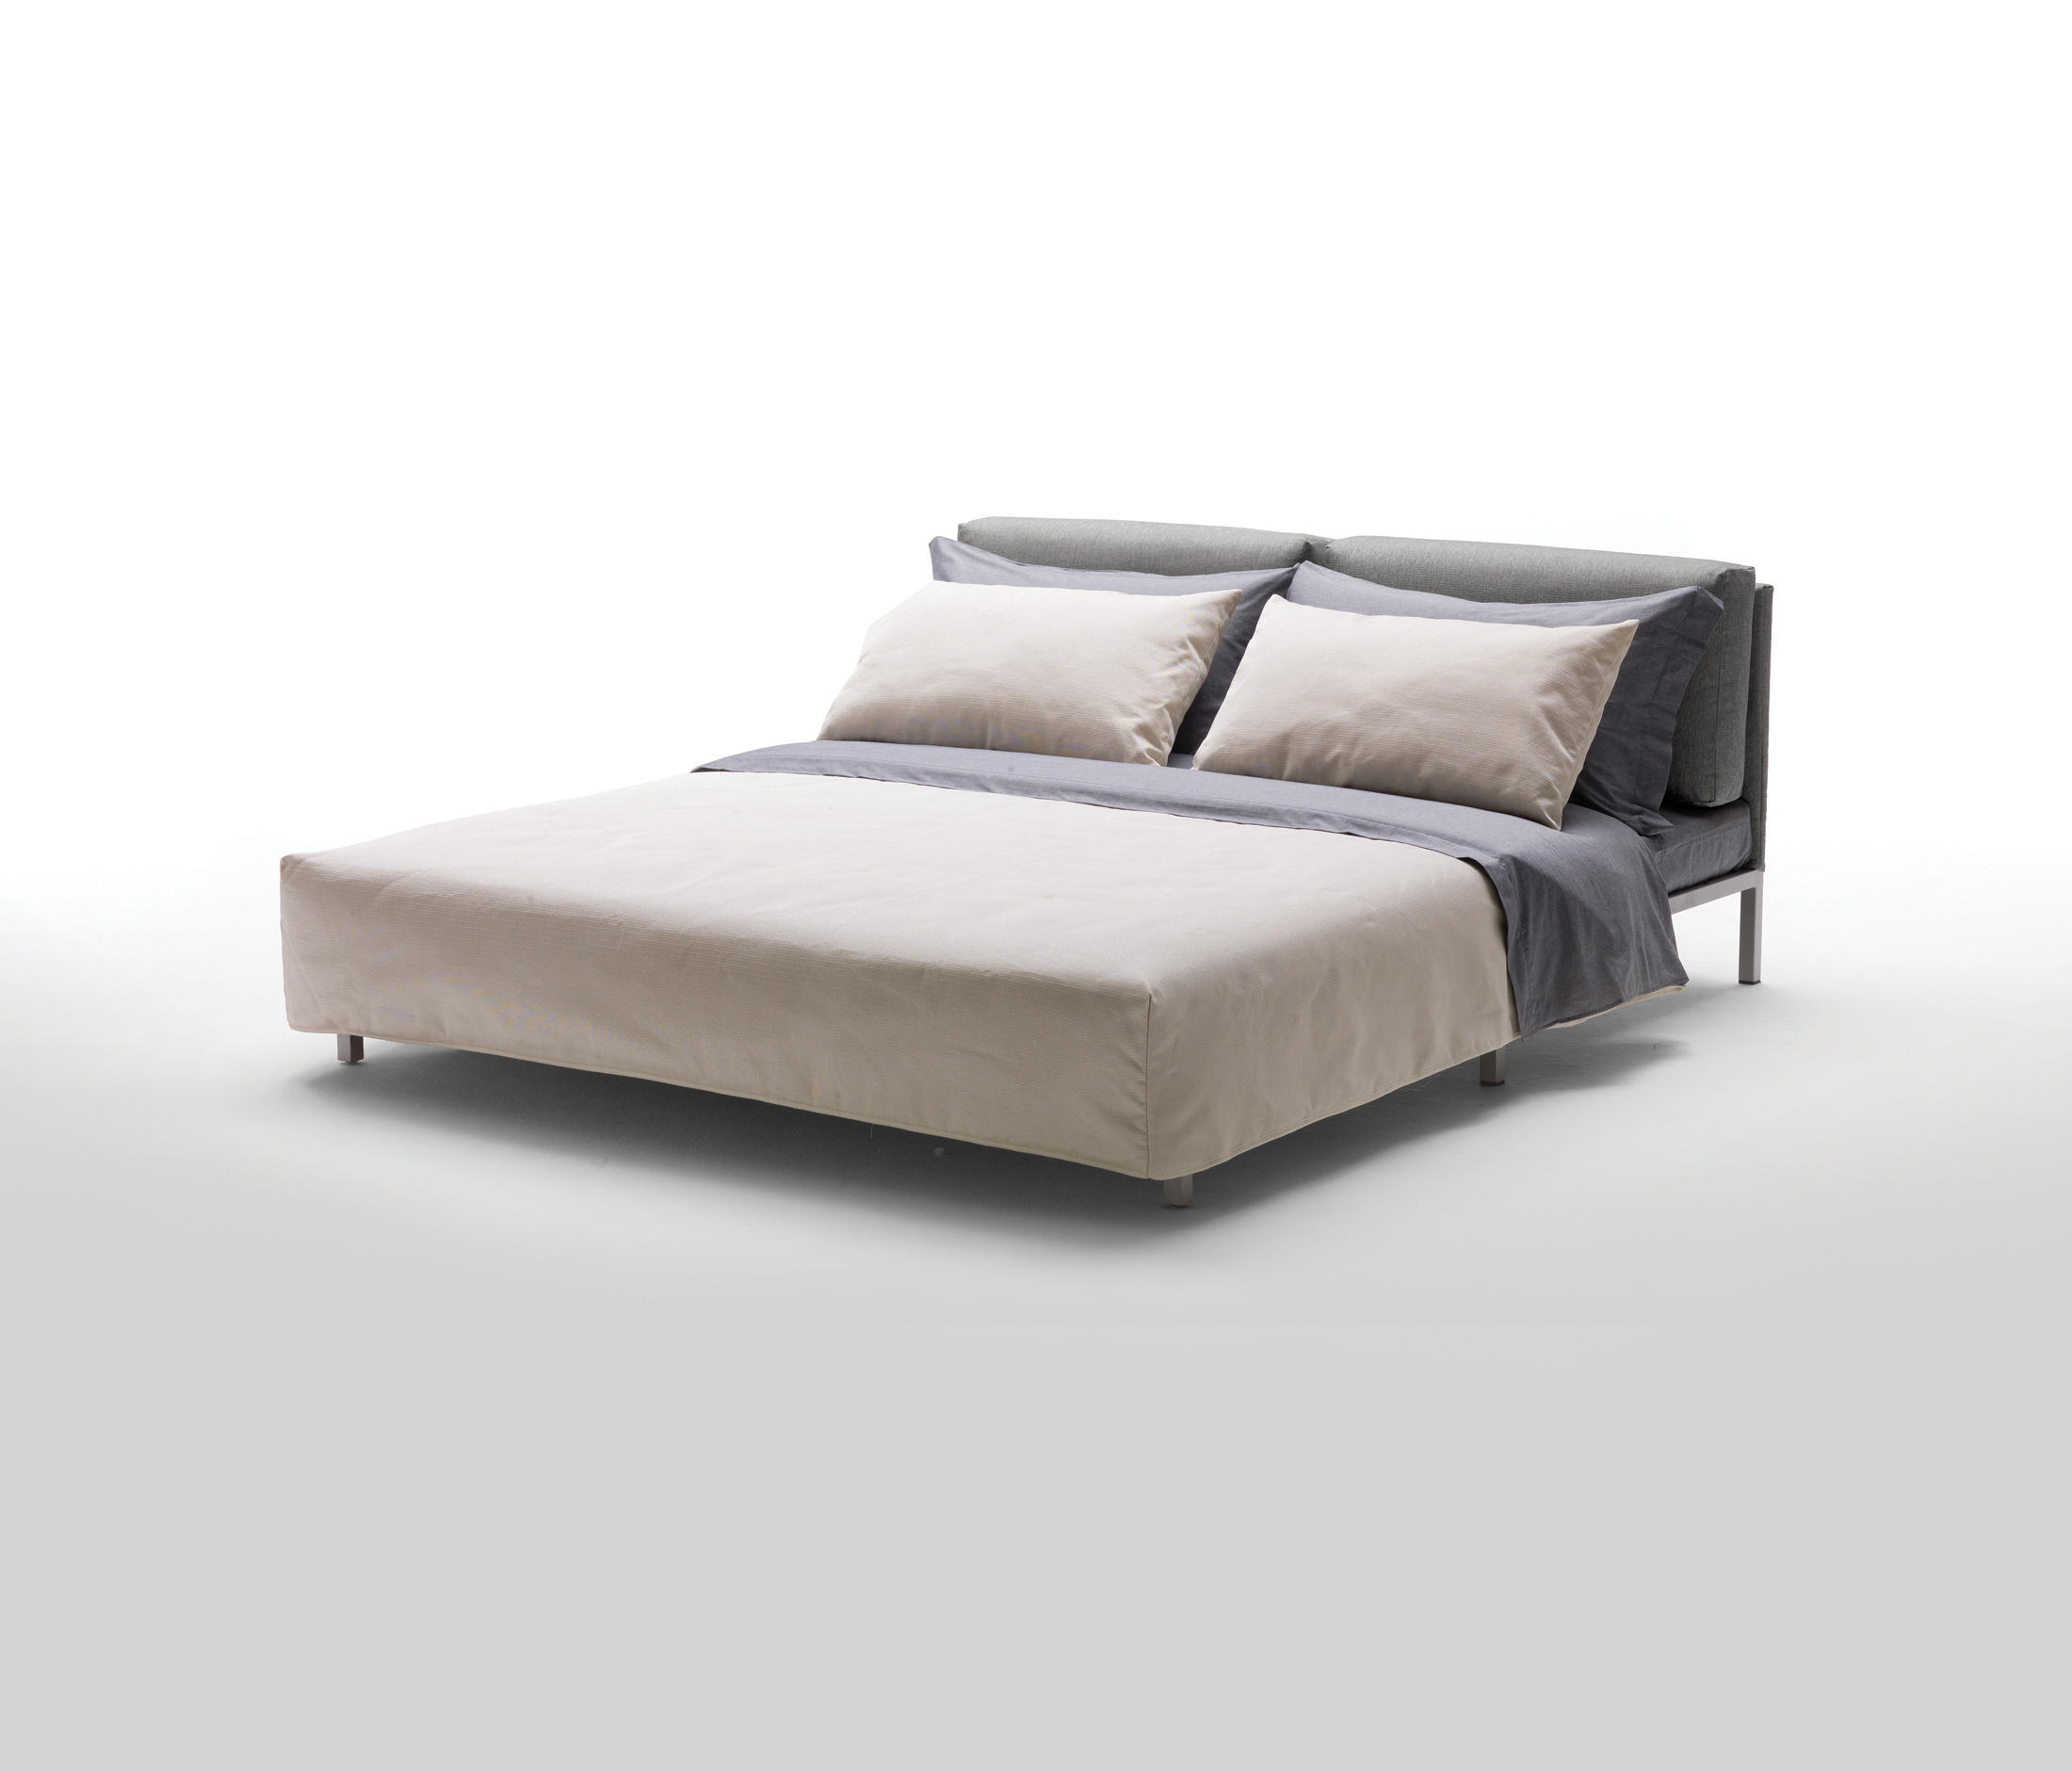 WILLY - Divani letto Milano Bedding | Architonic